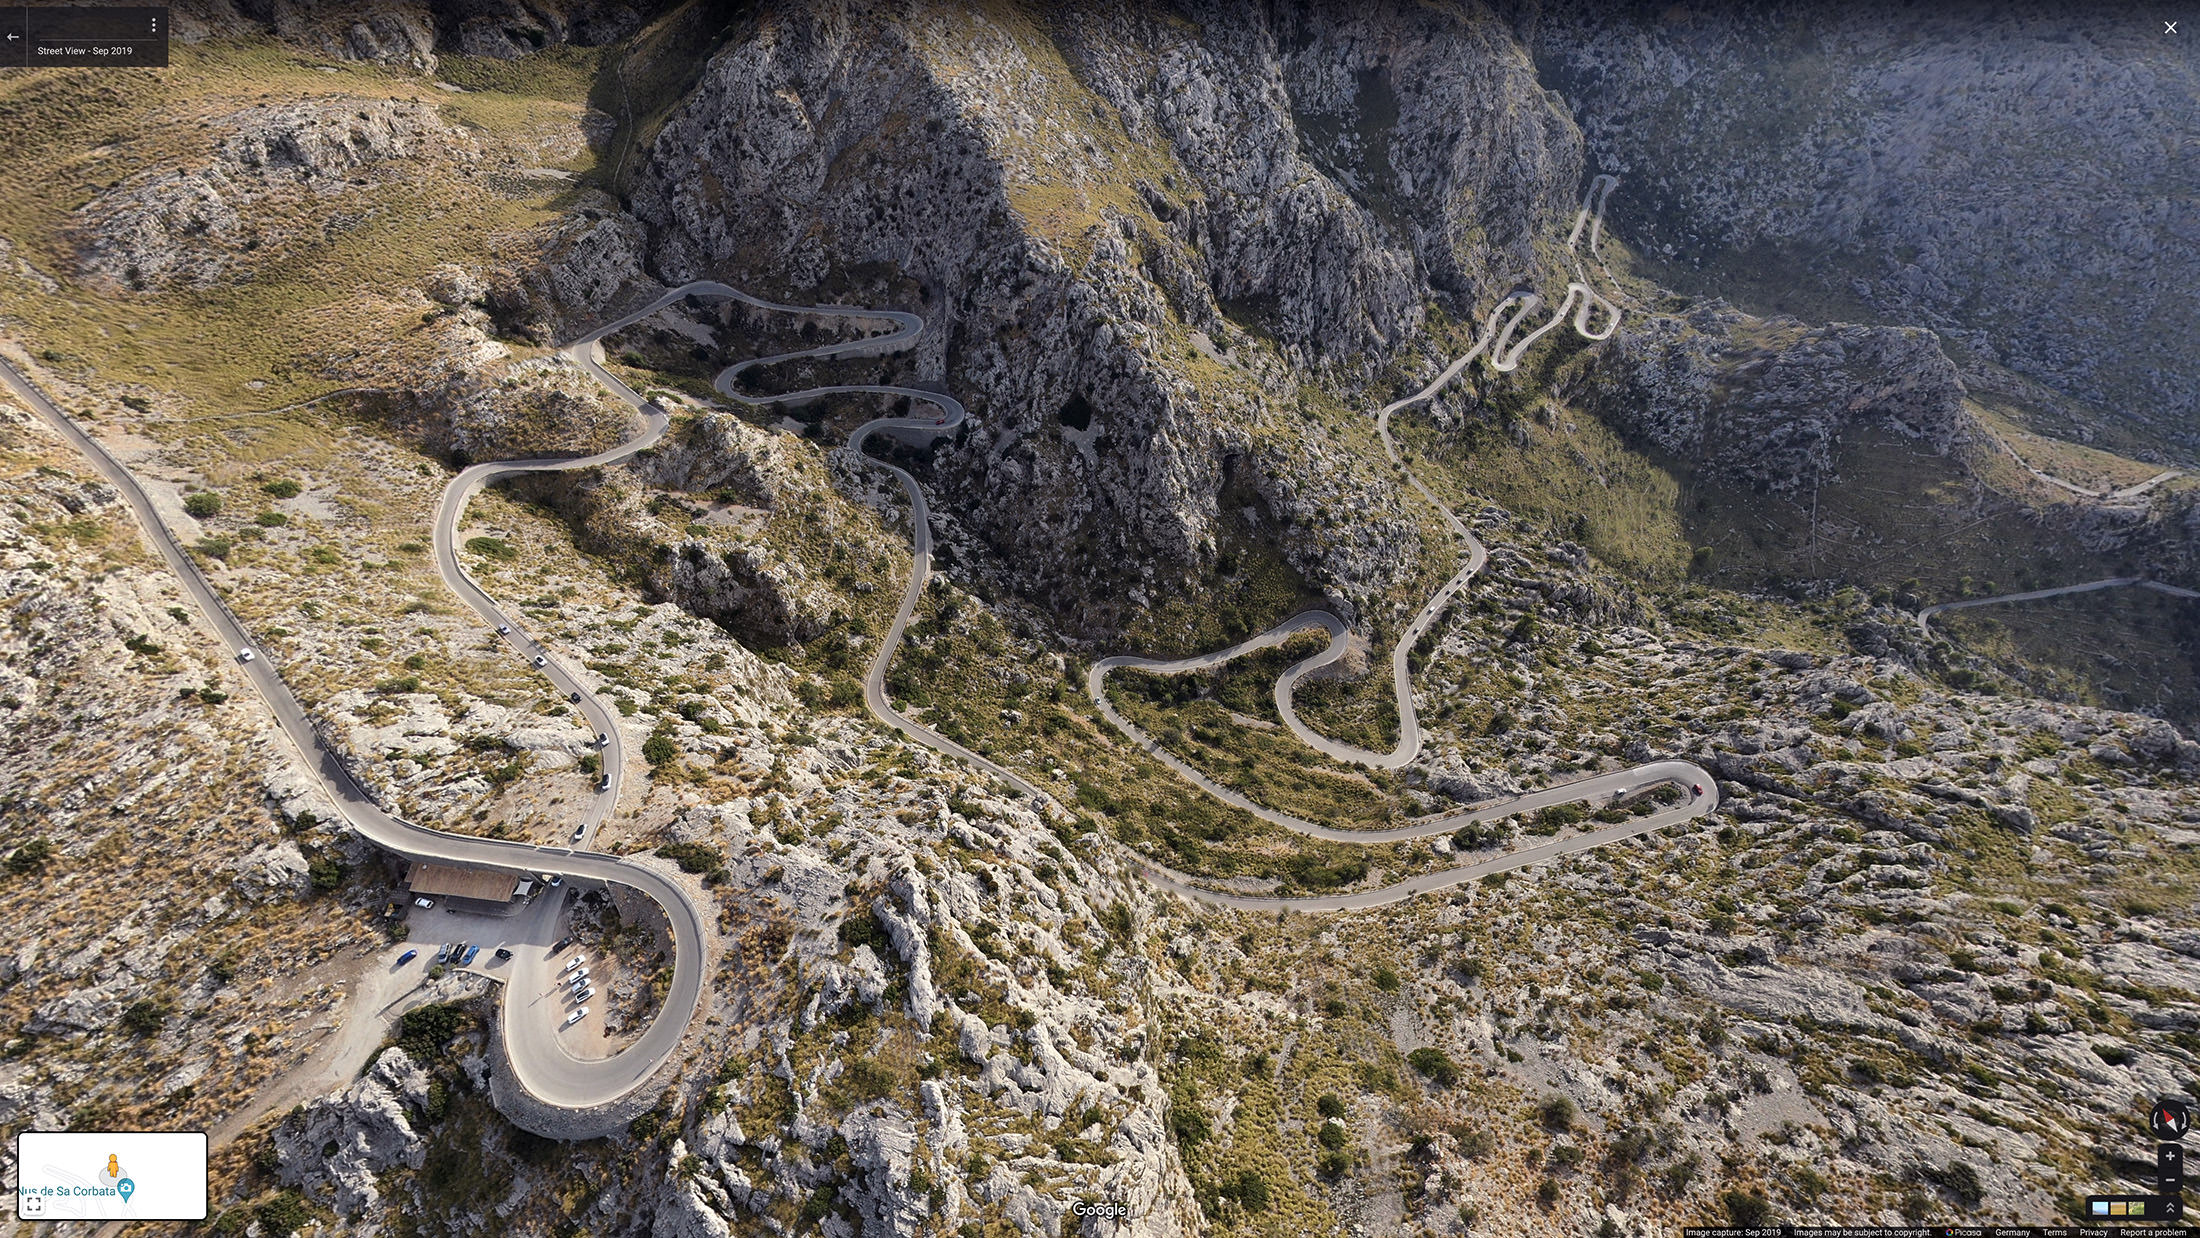 Twists and turns of the road to Sa Calobra